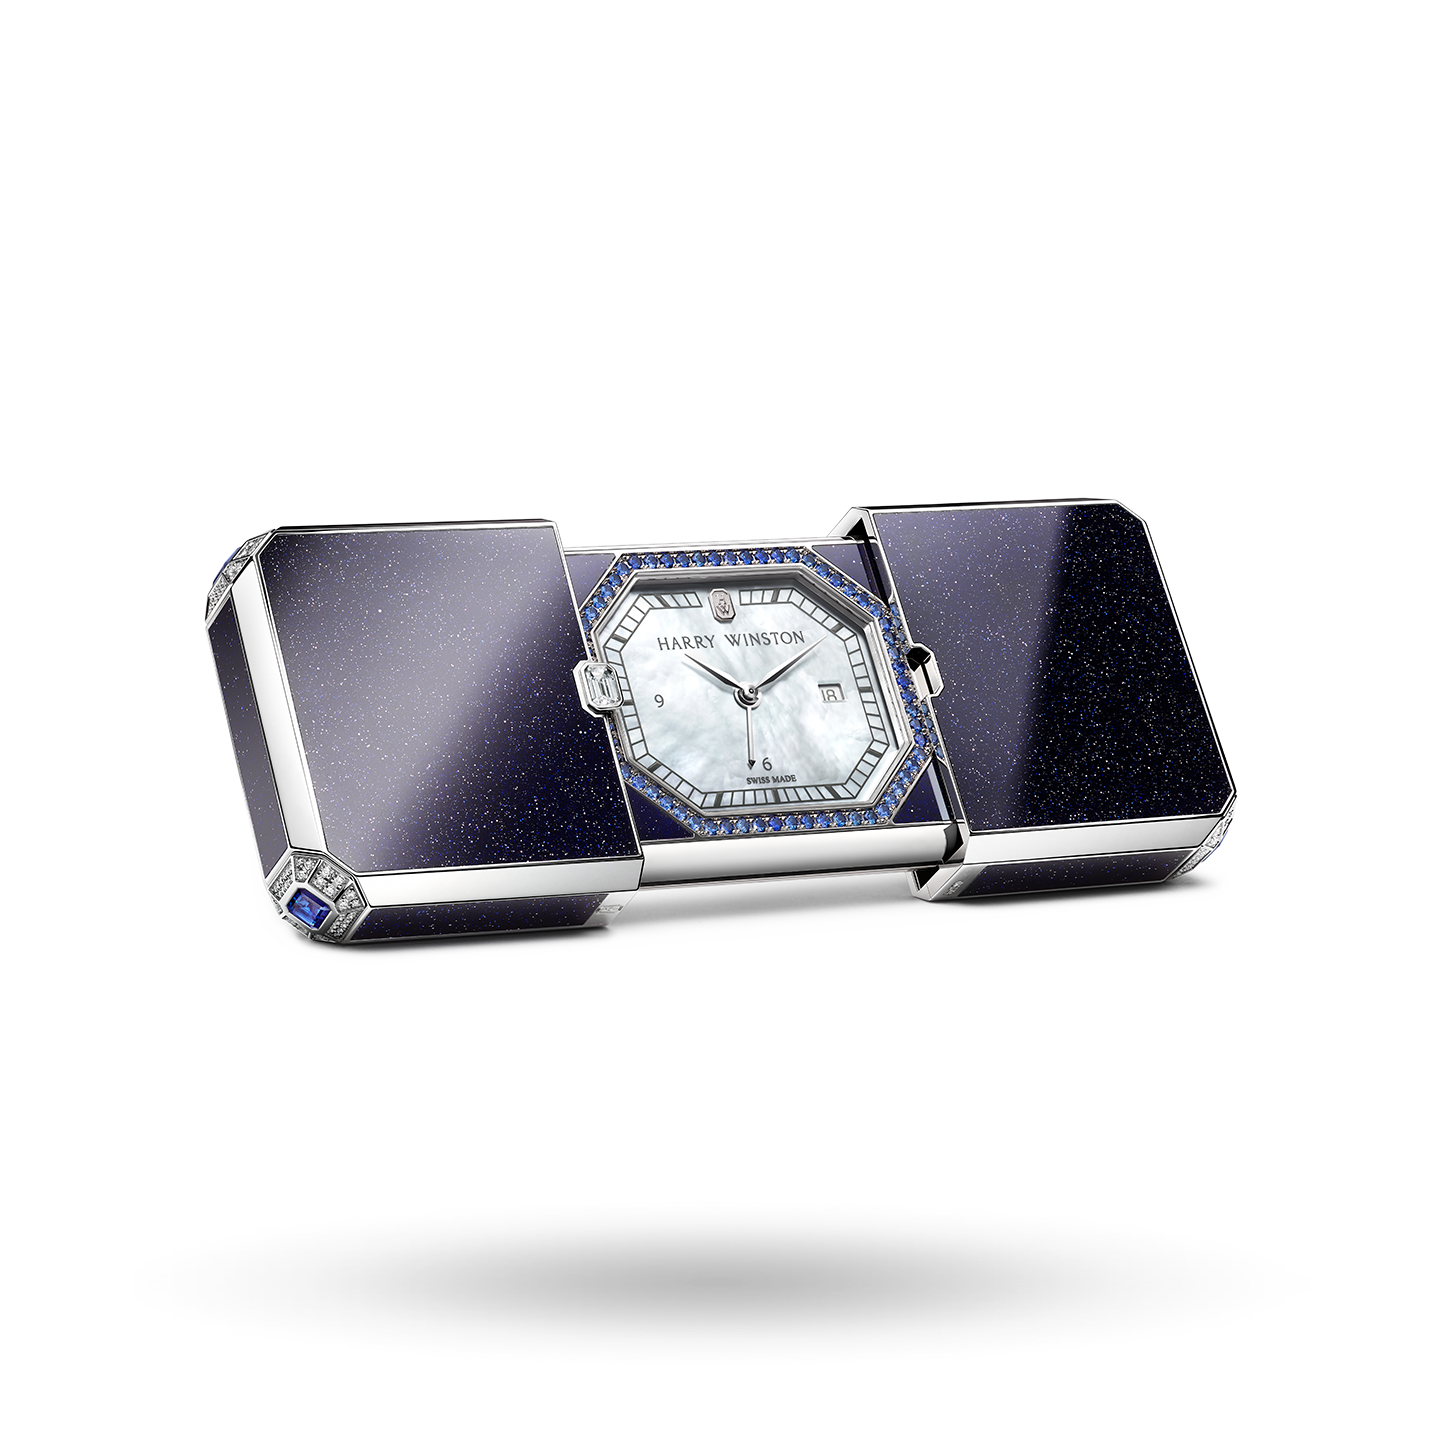 Travel Time by Harry Winston、イメージ1